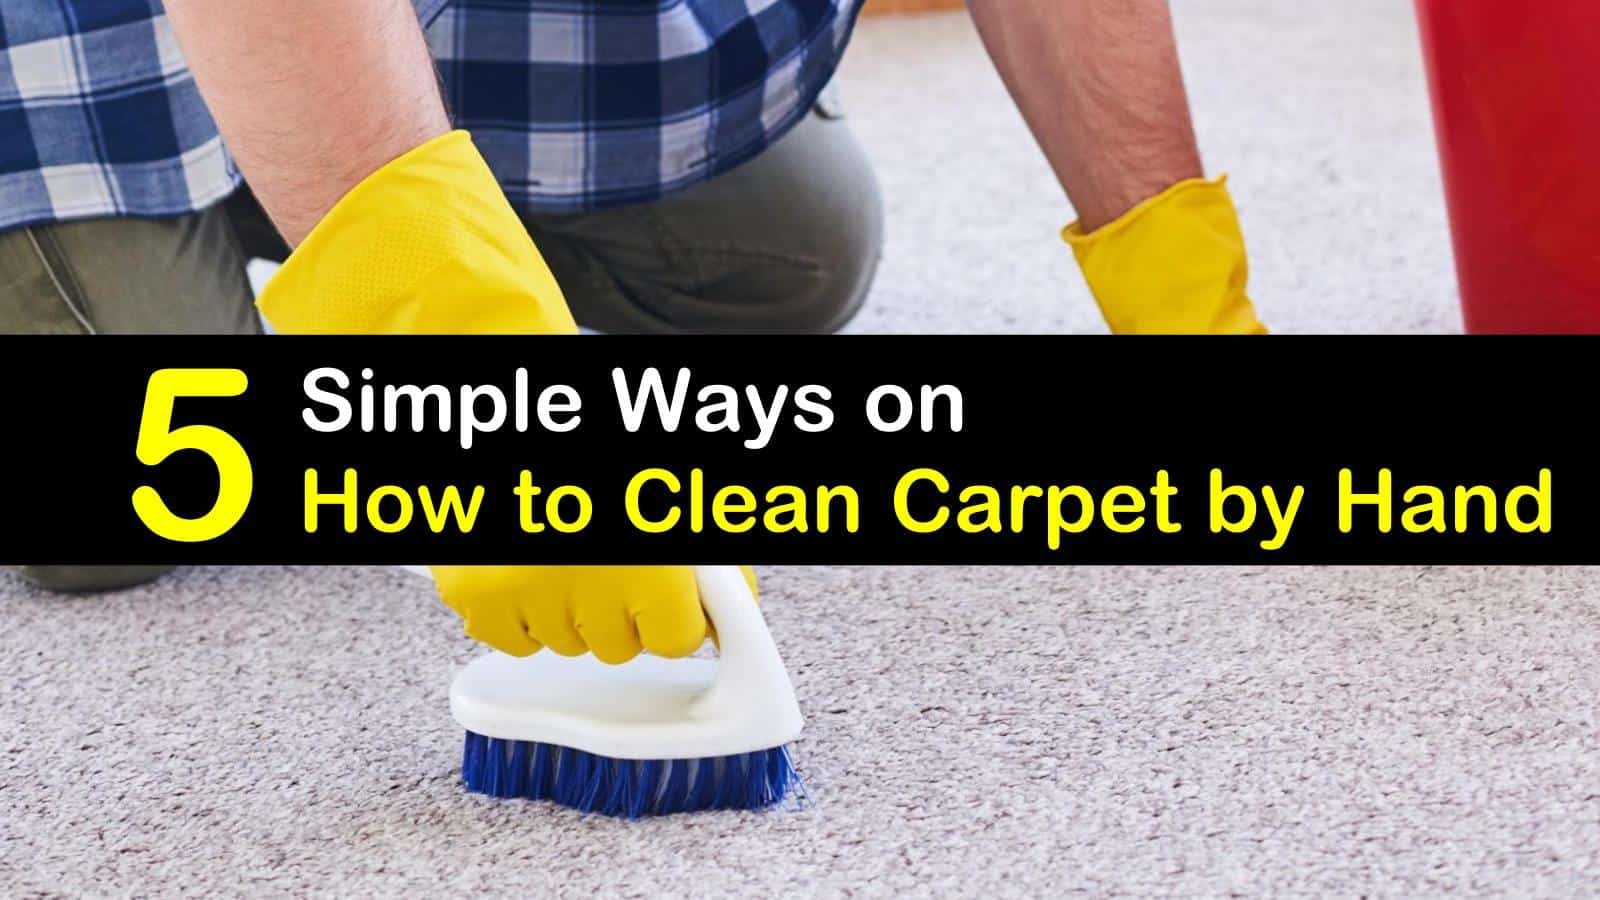 how to clean carpet by hand titlimg